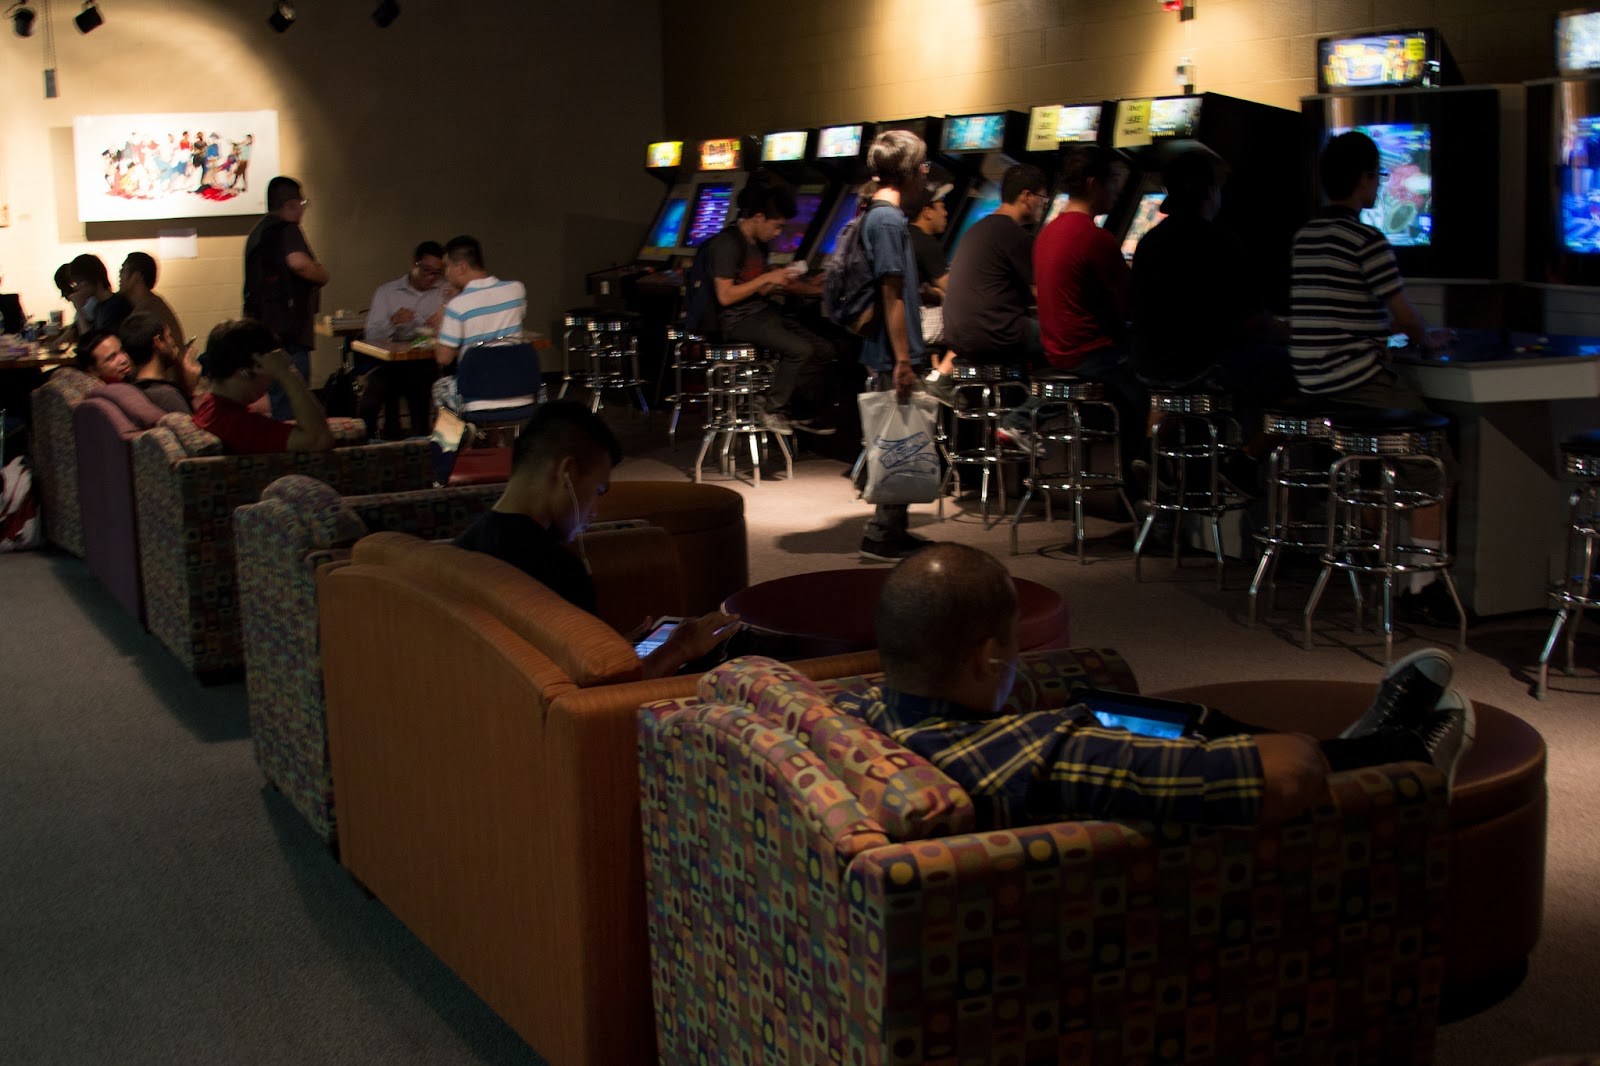 Students lounge around and play arcade games in the Games Room